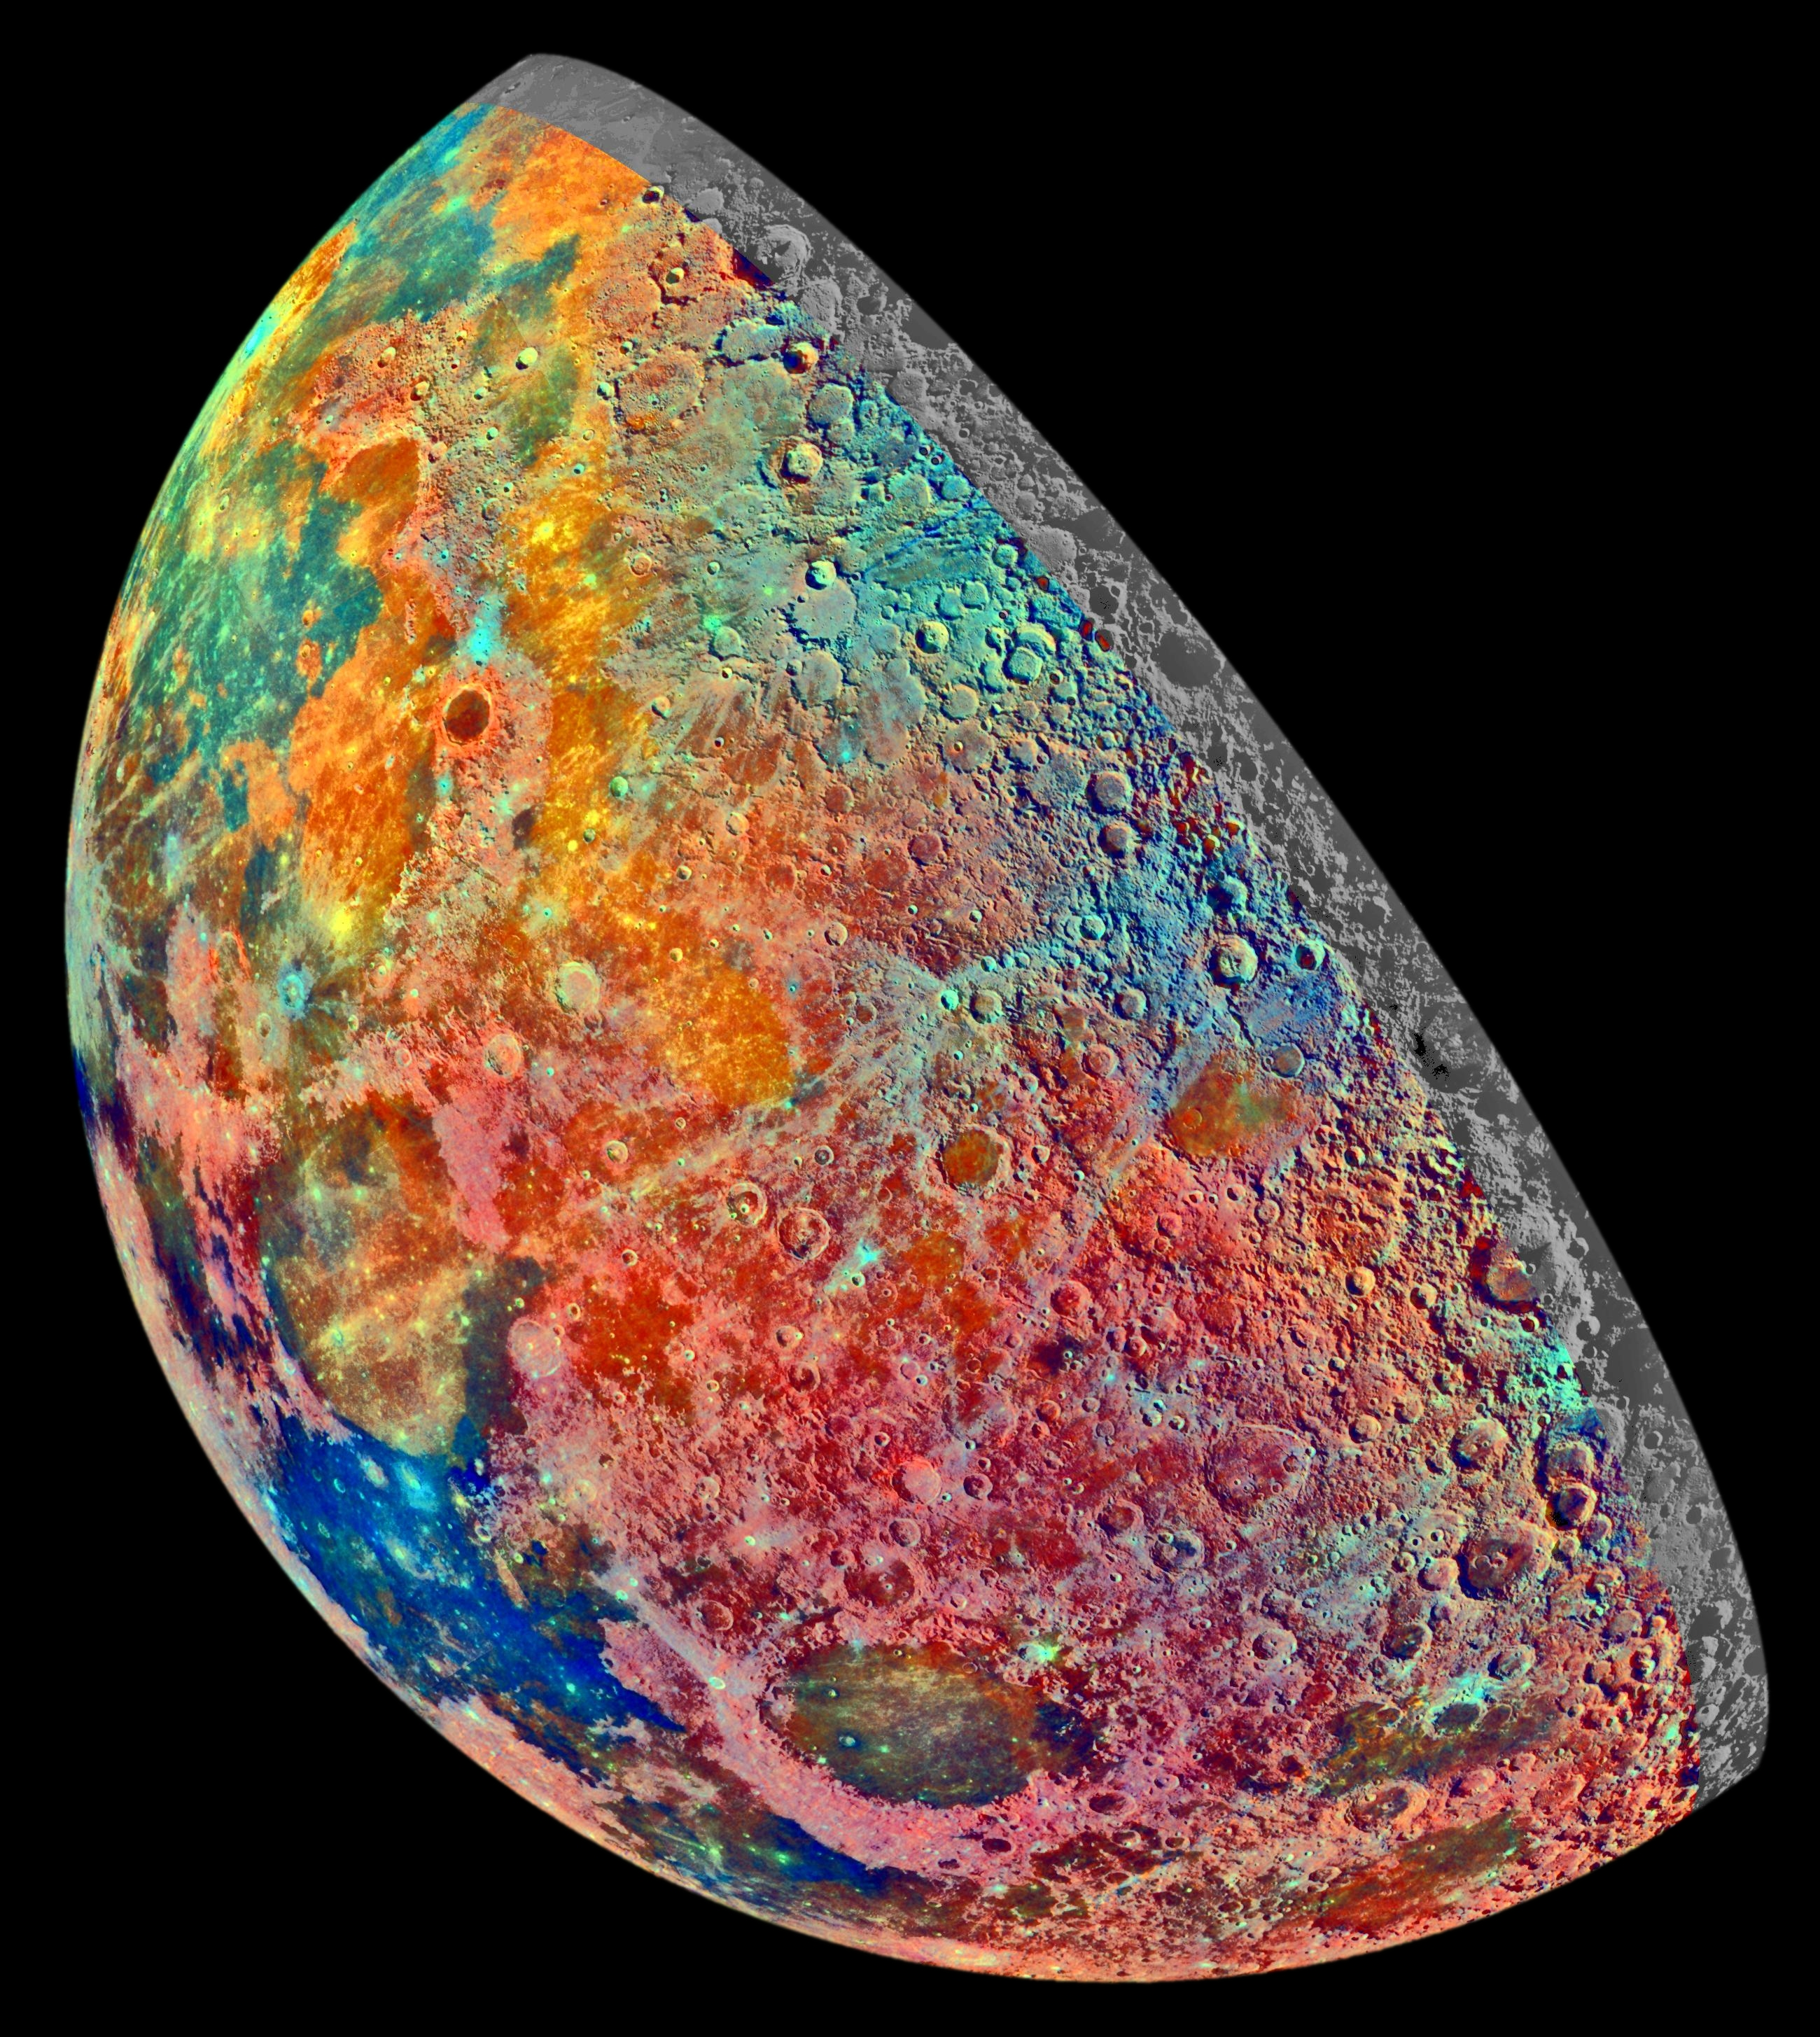 this image shows compositional variations of the moon overlaid as pseudocolor bright pinkish areas are